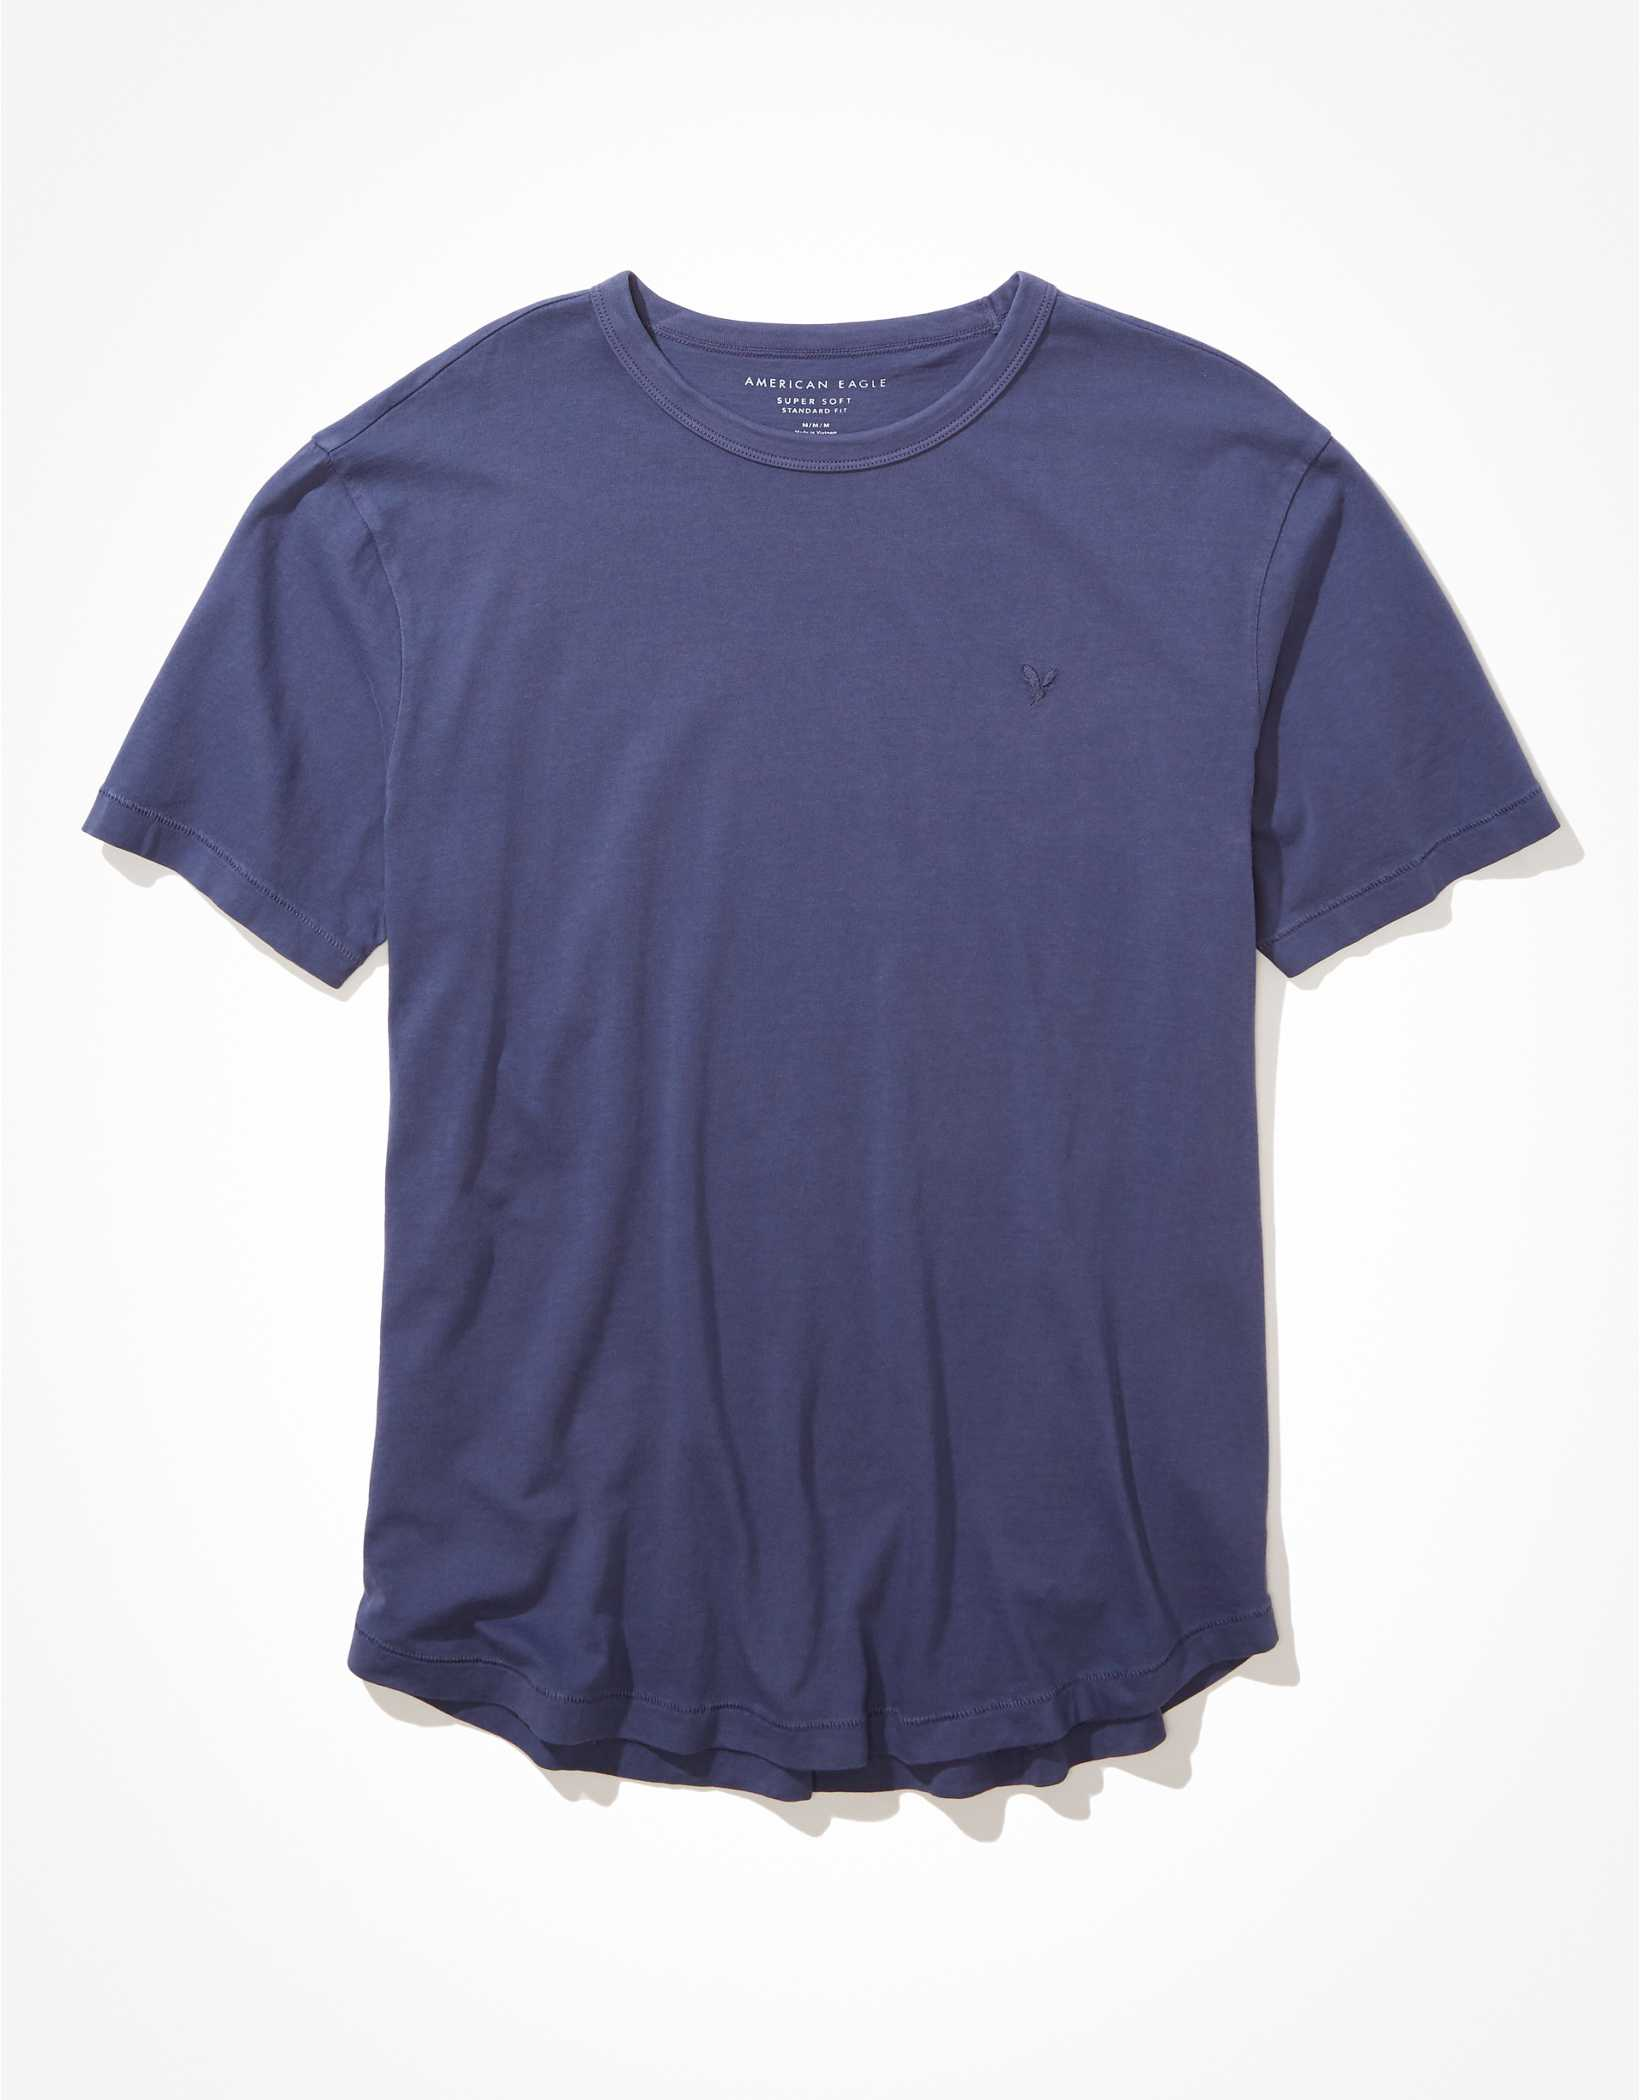 .97 AE Super Soft Curved Hem Icon T-Shirt + Free shipping over  at American Eagle!